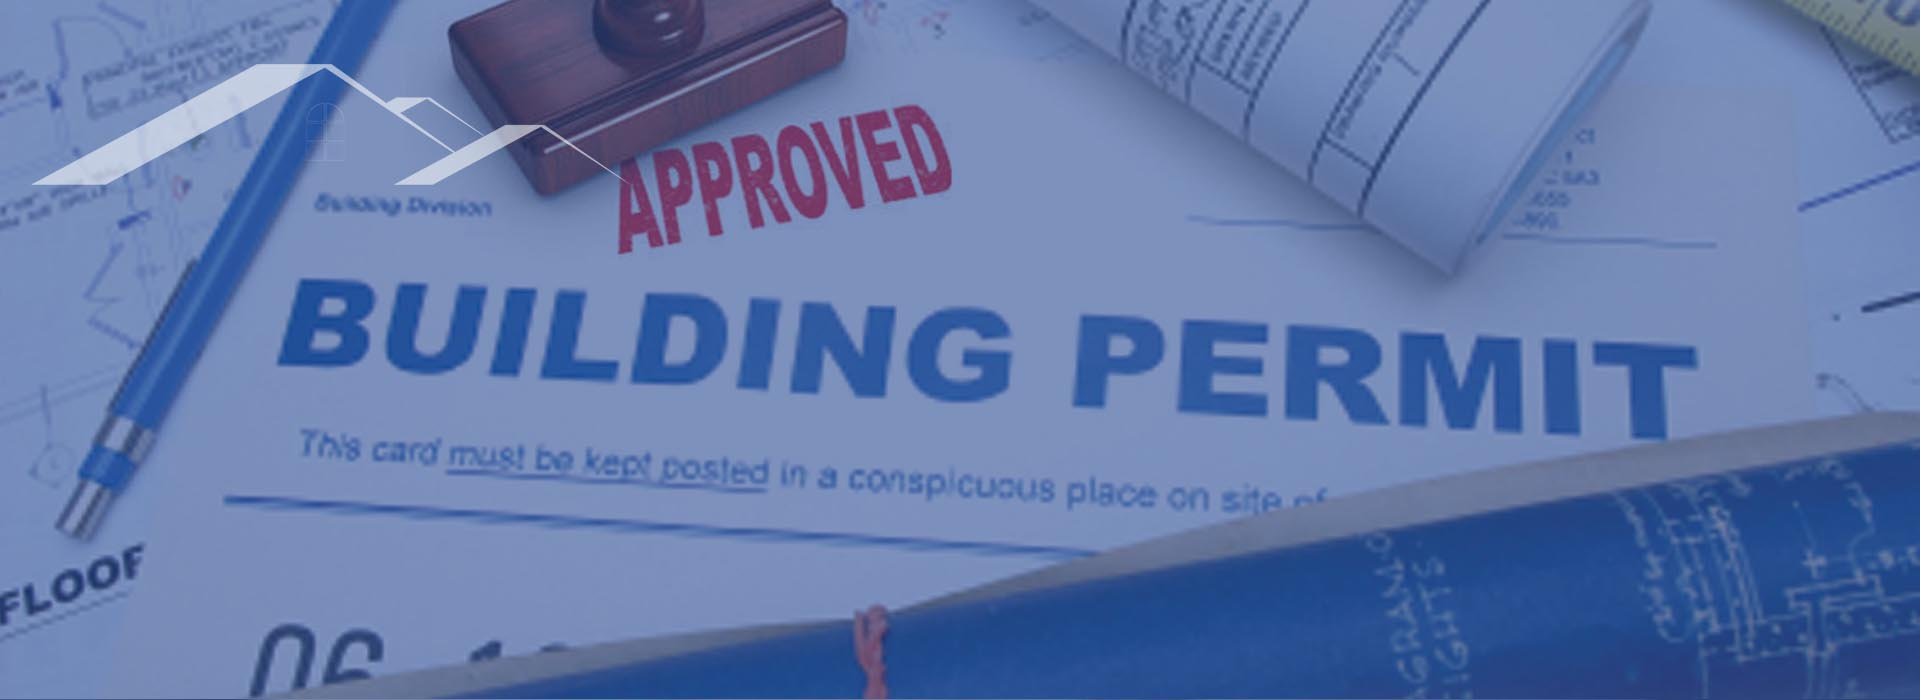 Building Permits by McKinley Engineering & Consulting